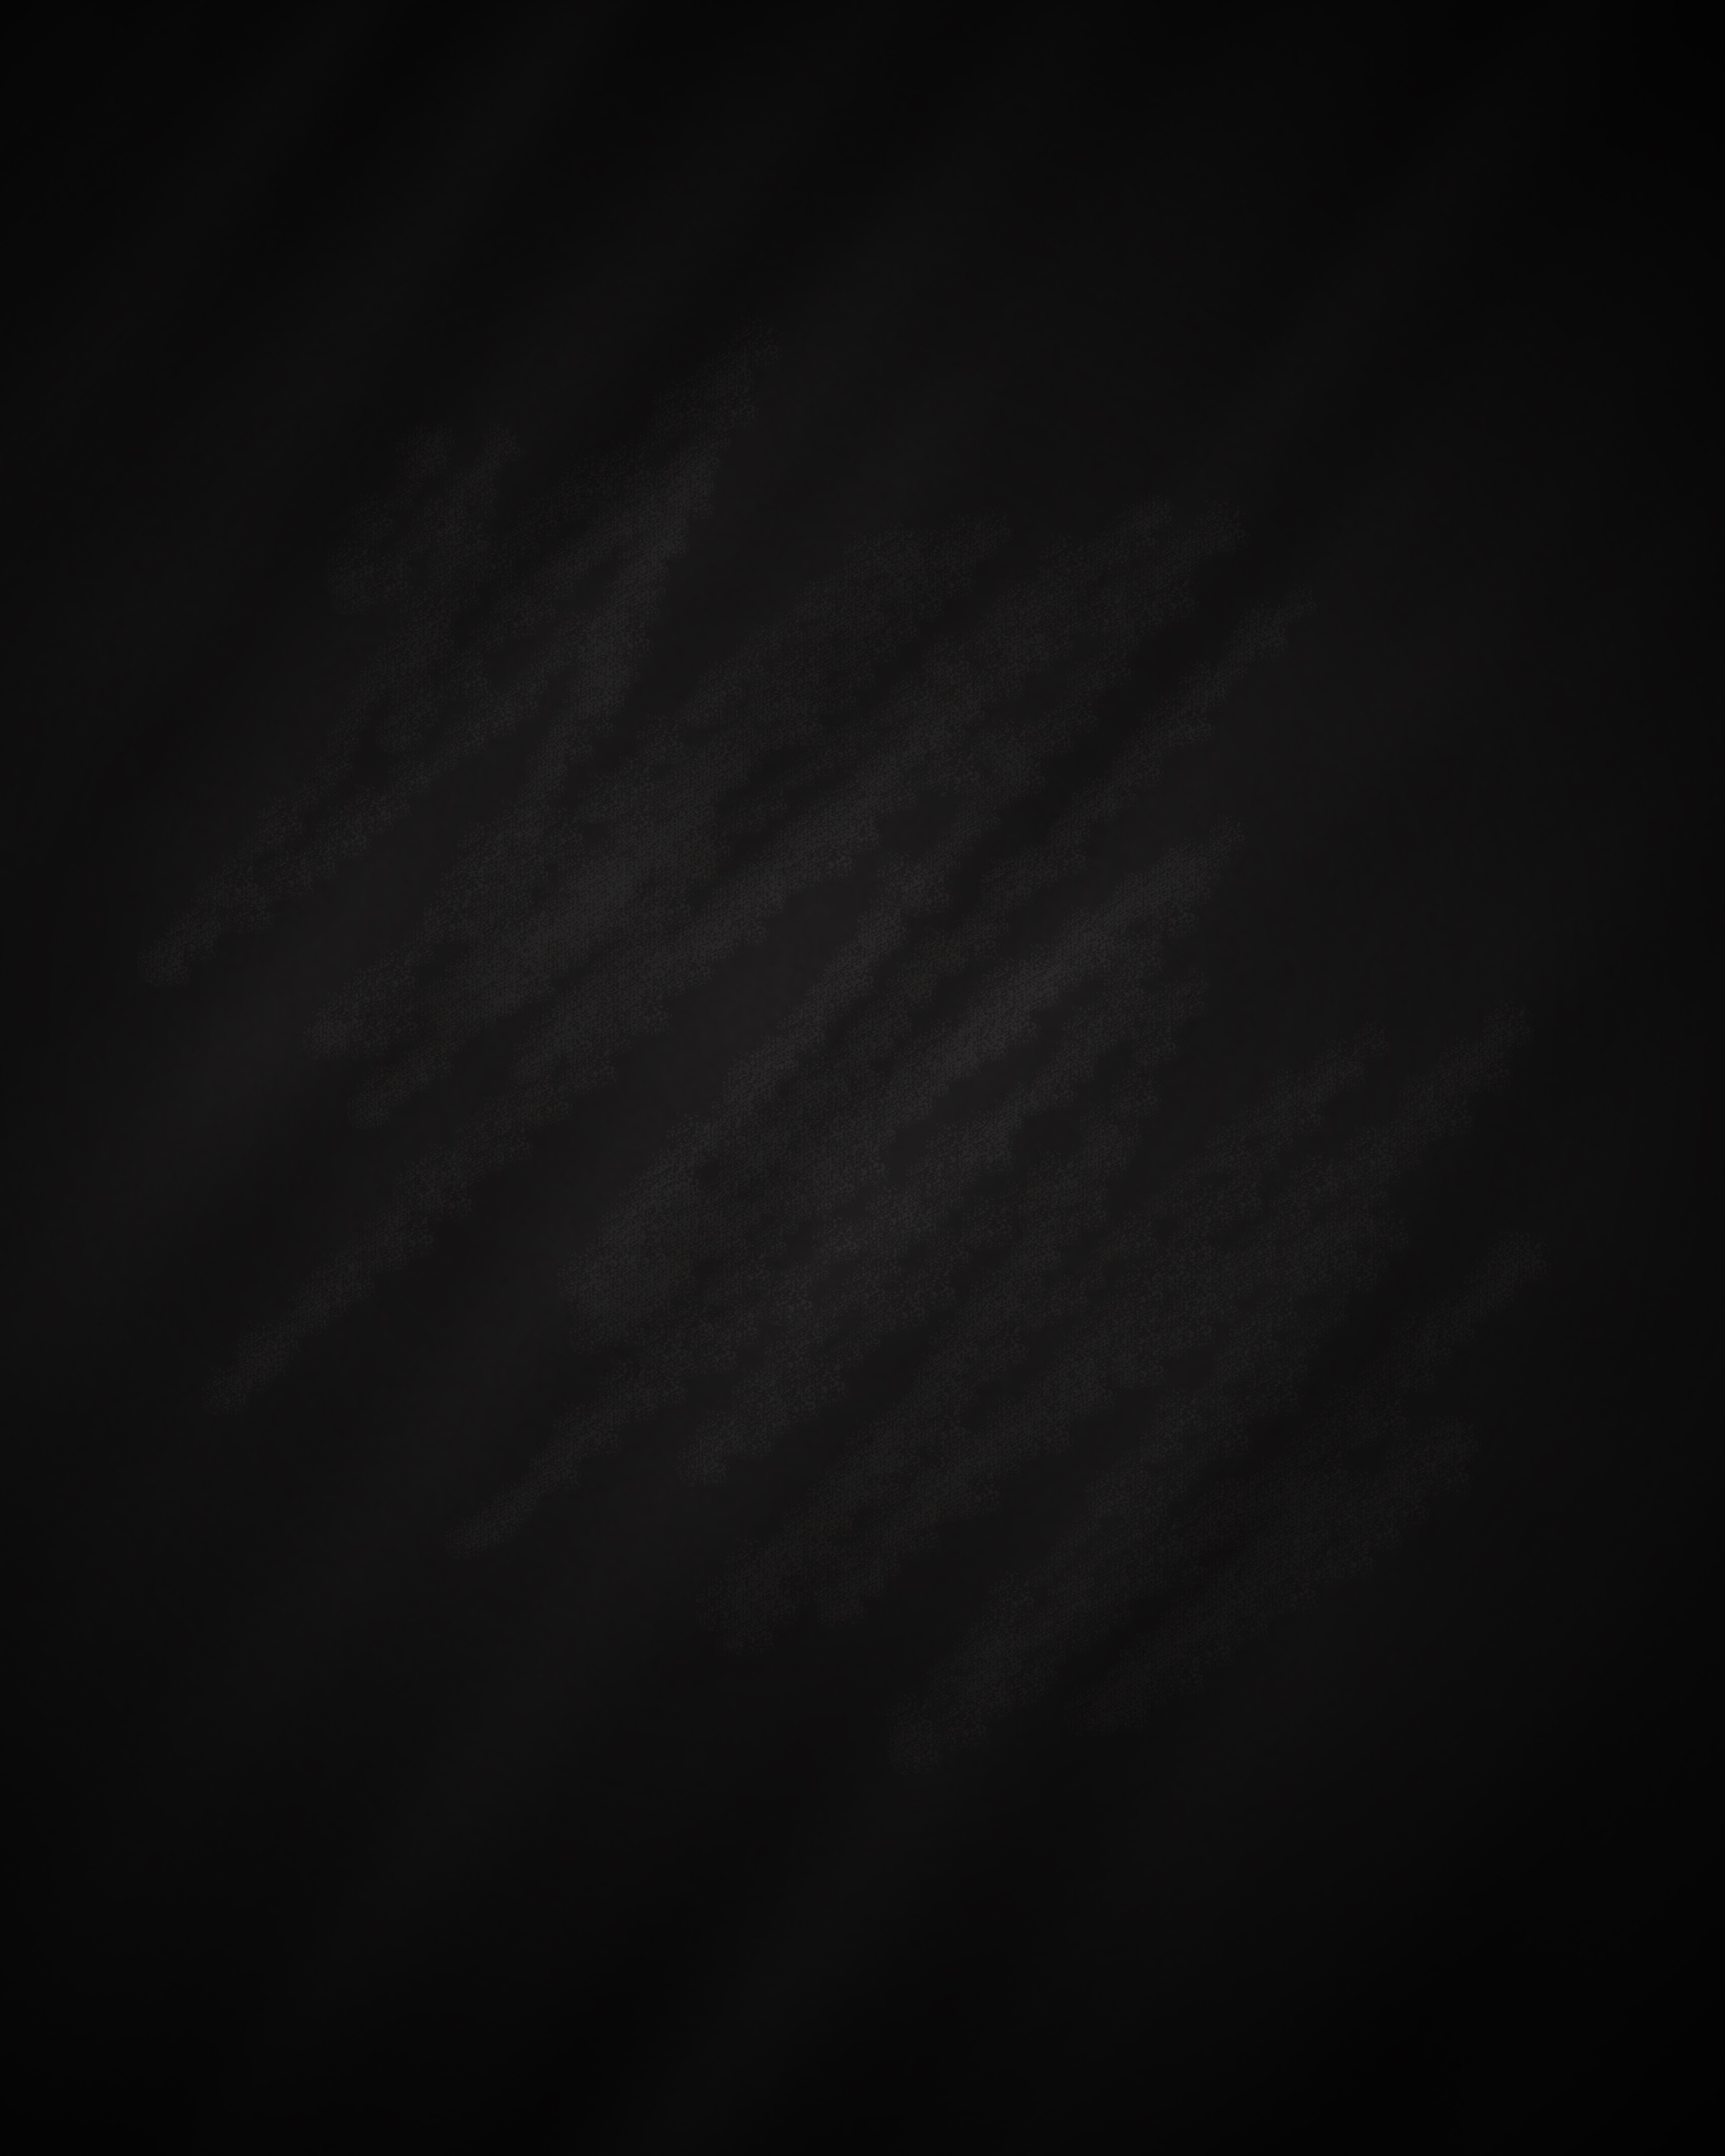 Free Chalkboard Background Download